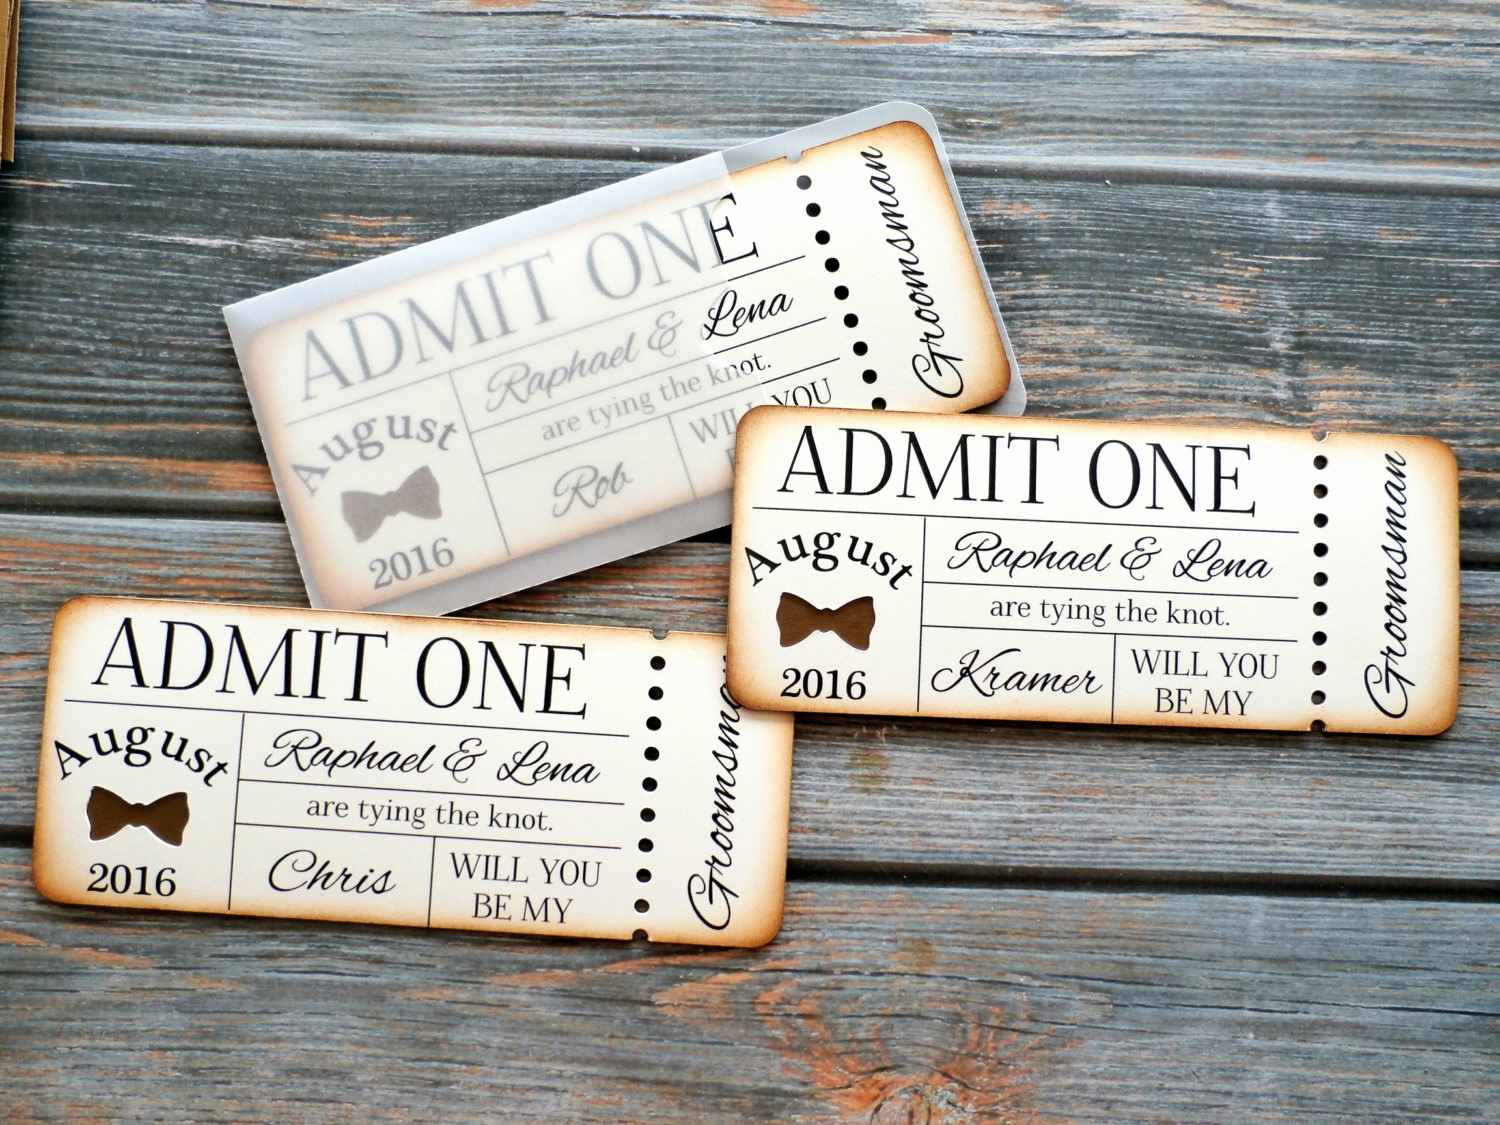 Admit One Ticket Invitation Inspirational Rustic Groomsman Invitation Admit E Ticket Invite by